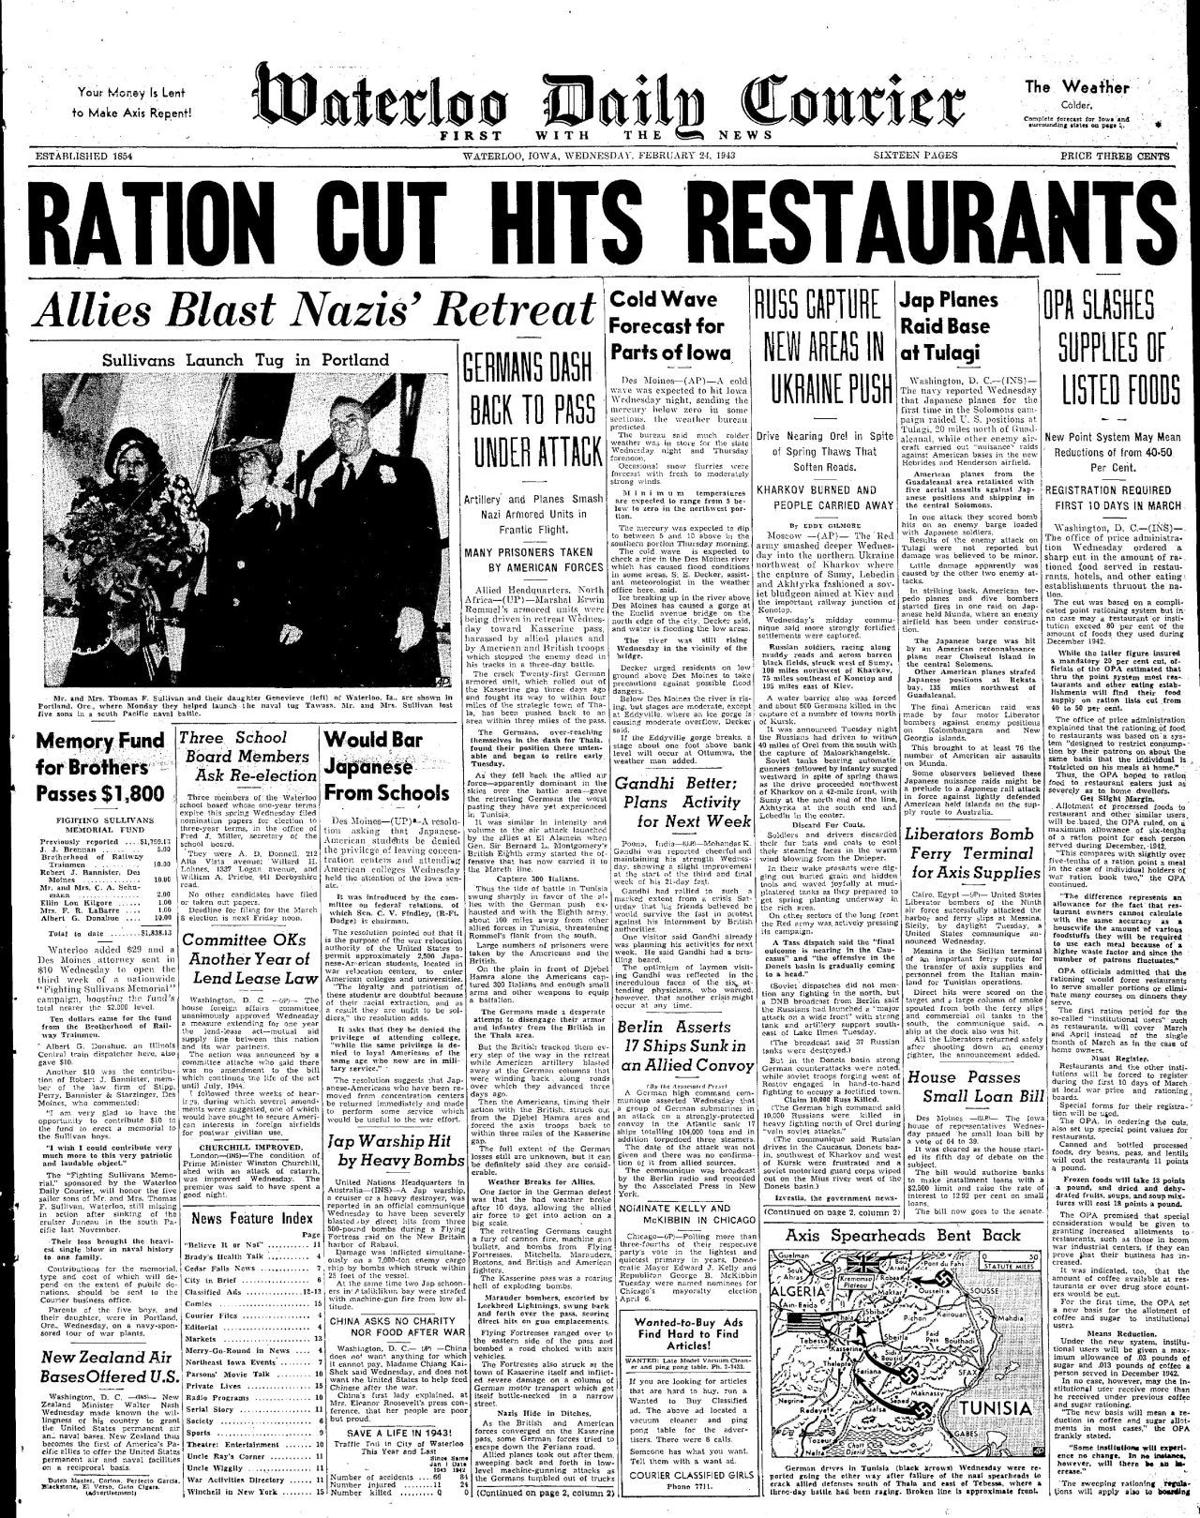 Courier Feb. 24, 1943